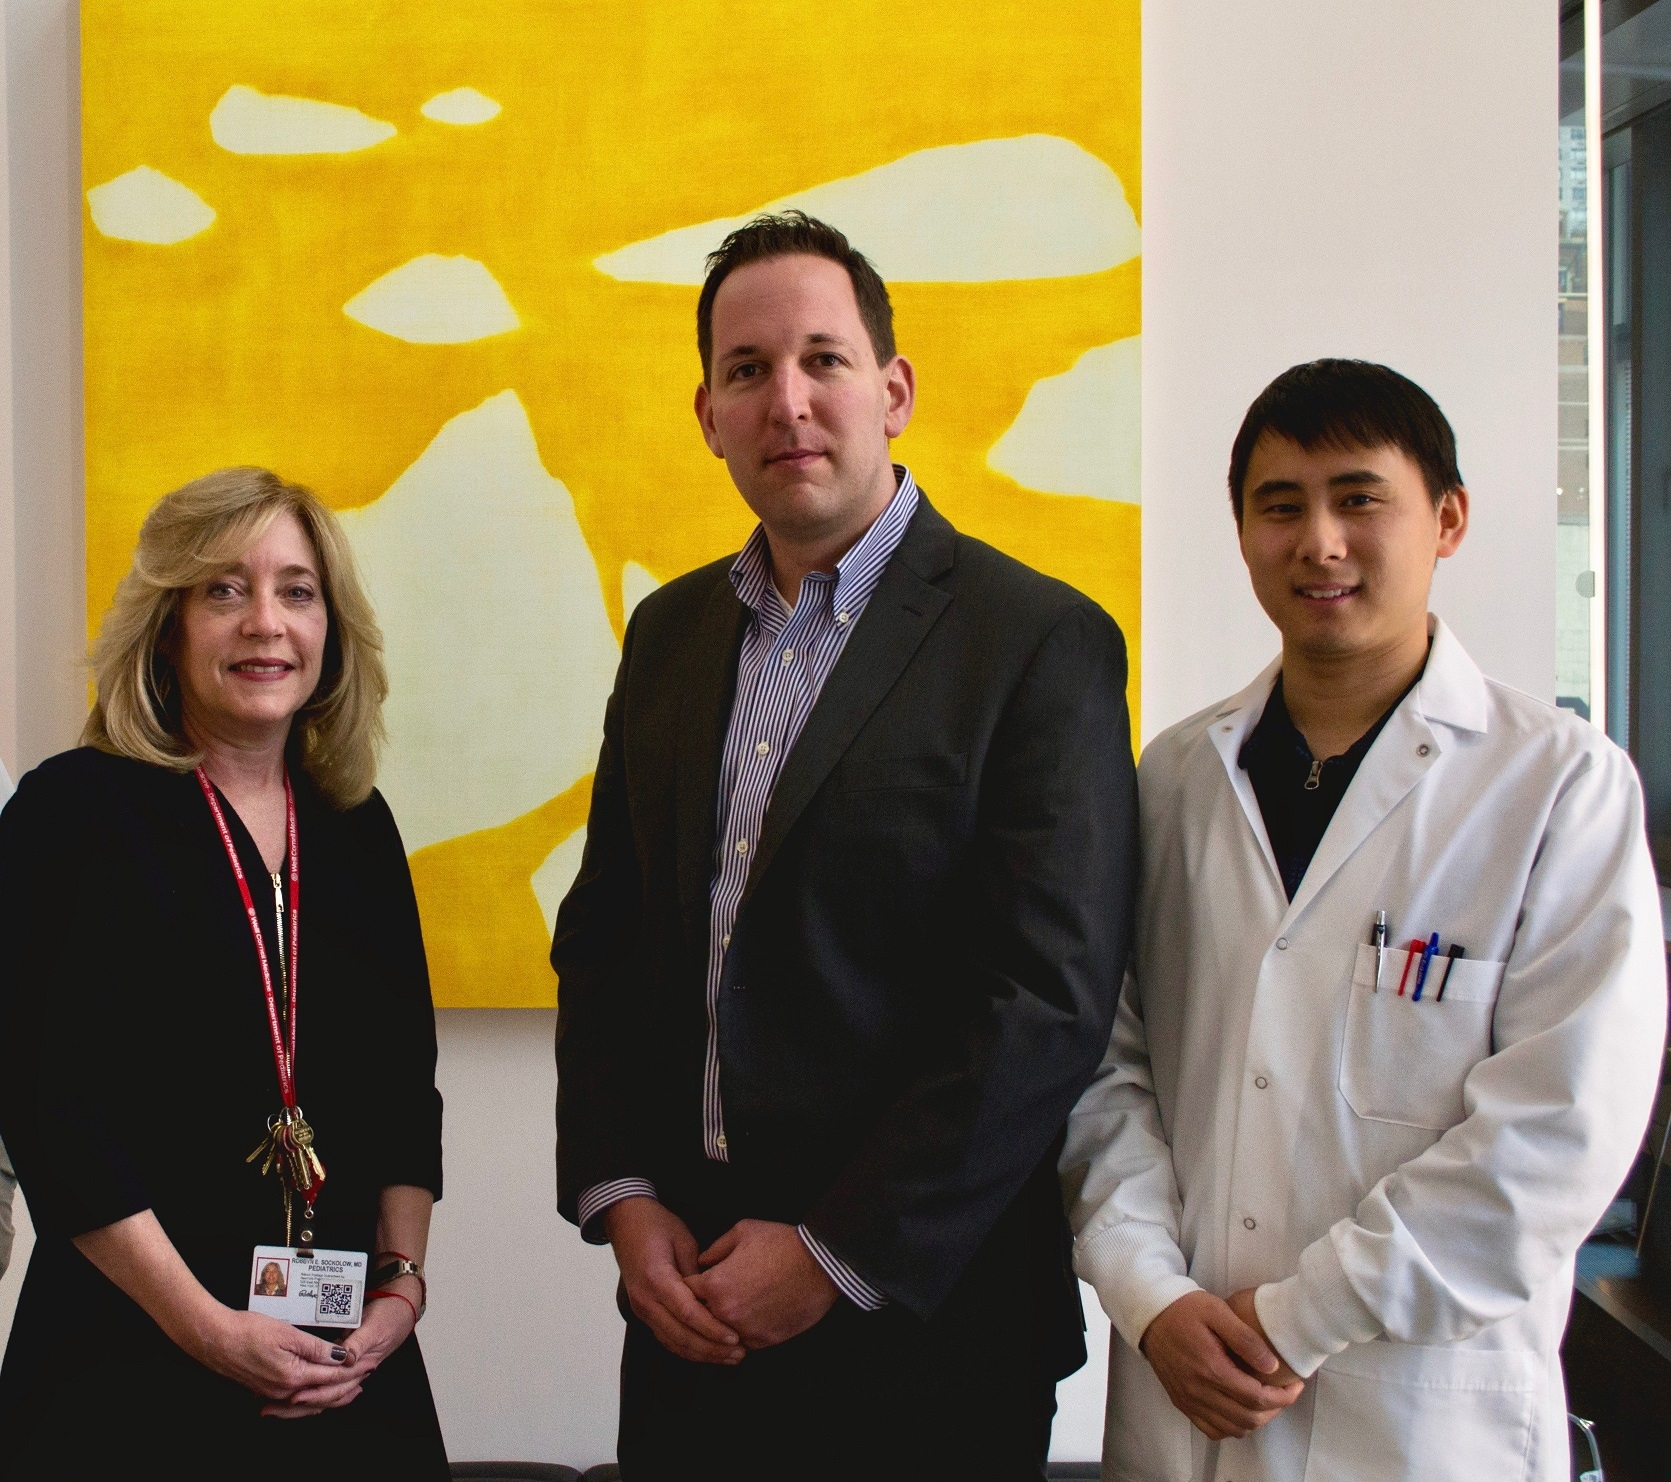 From left: Dr. Robbyn Sockolow, Dr. Gregory Sonnenberg and Dr. Lei Zhou